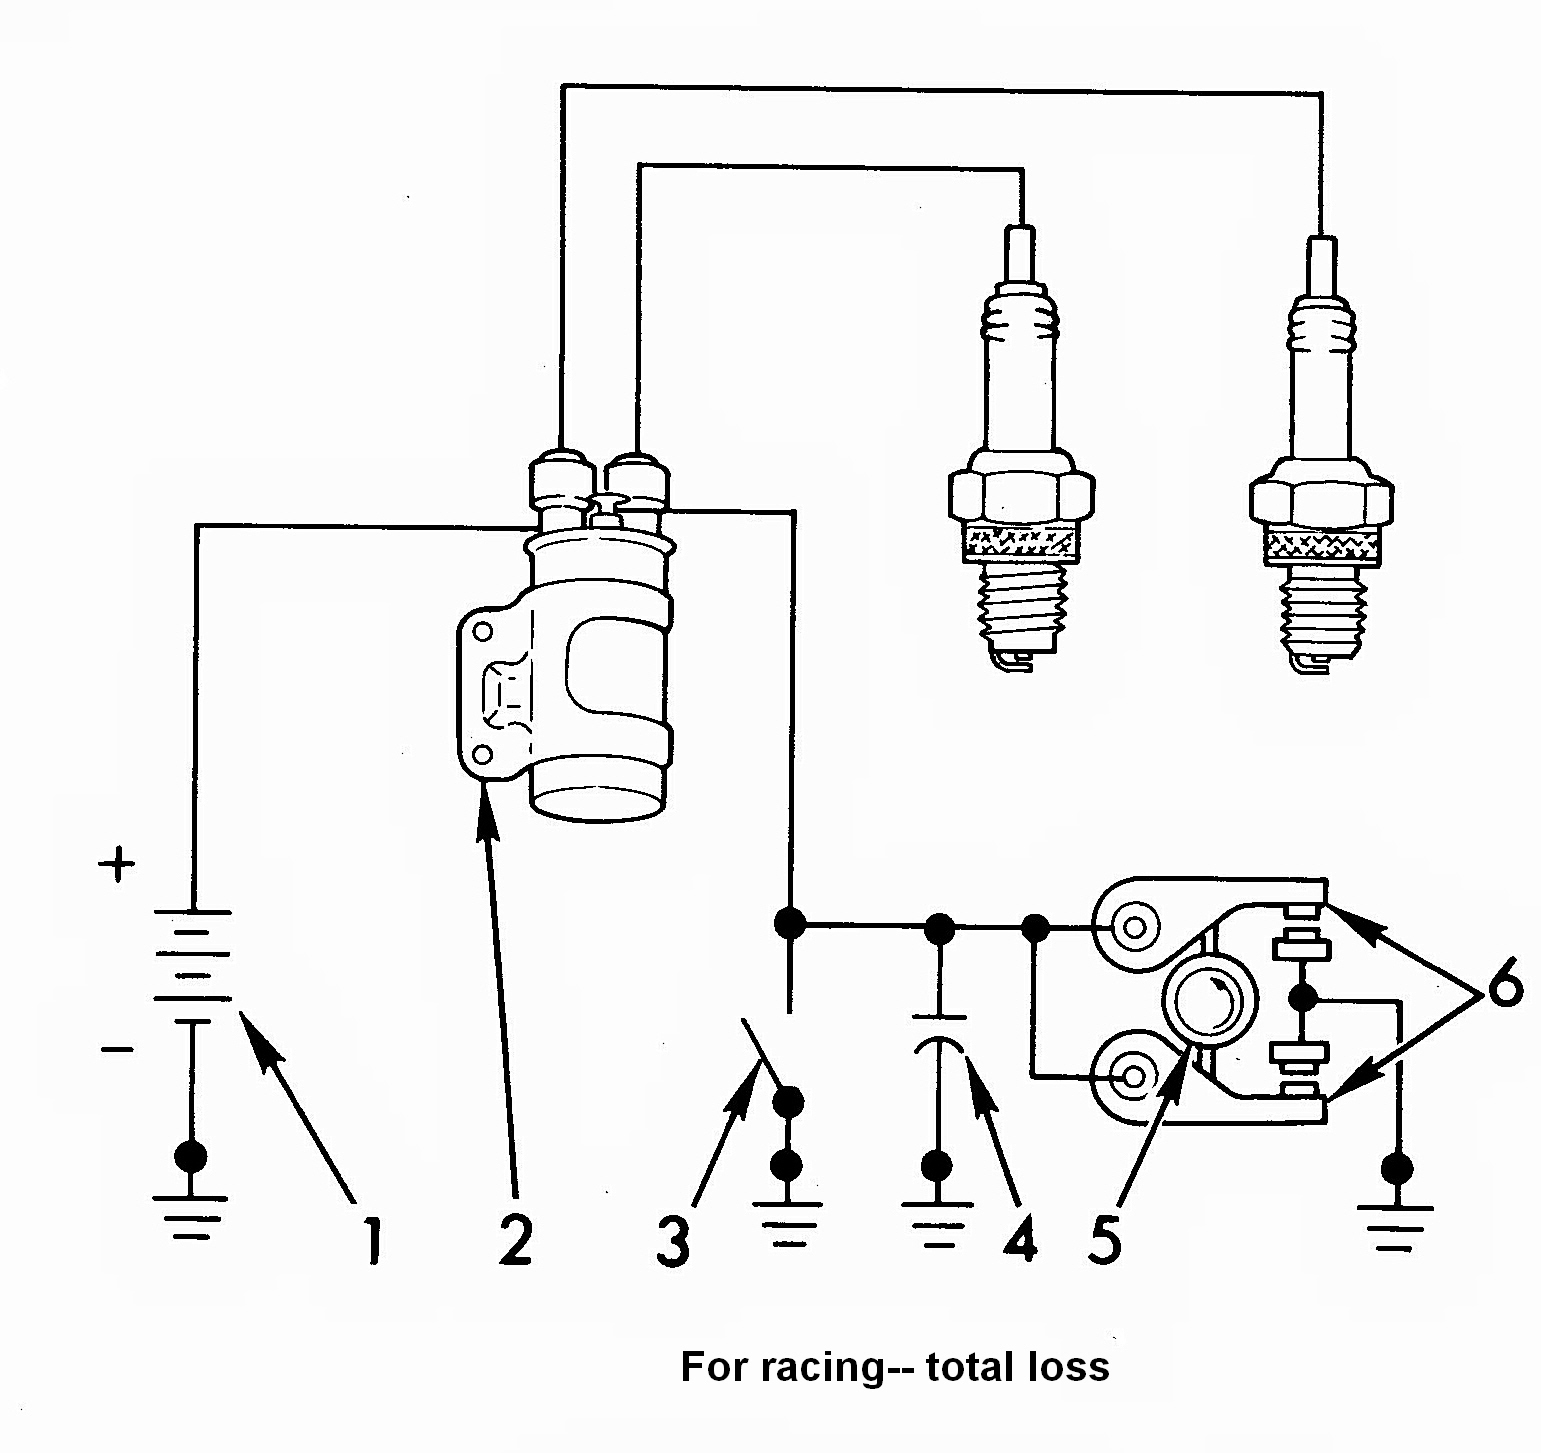 ignition coil wiring diagram wiring diagram ignition coil the wiring diagram wiring diagram for ignition coil electrical ignition coil wiring